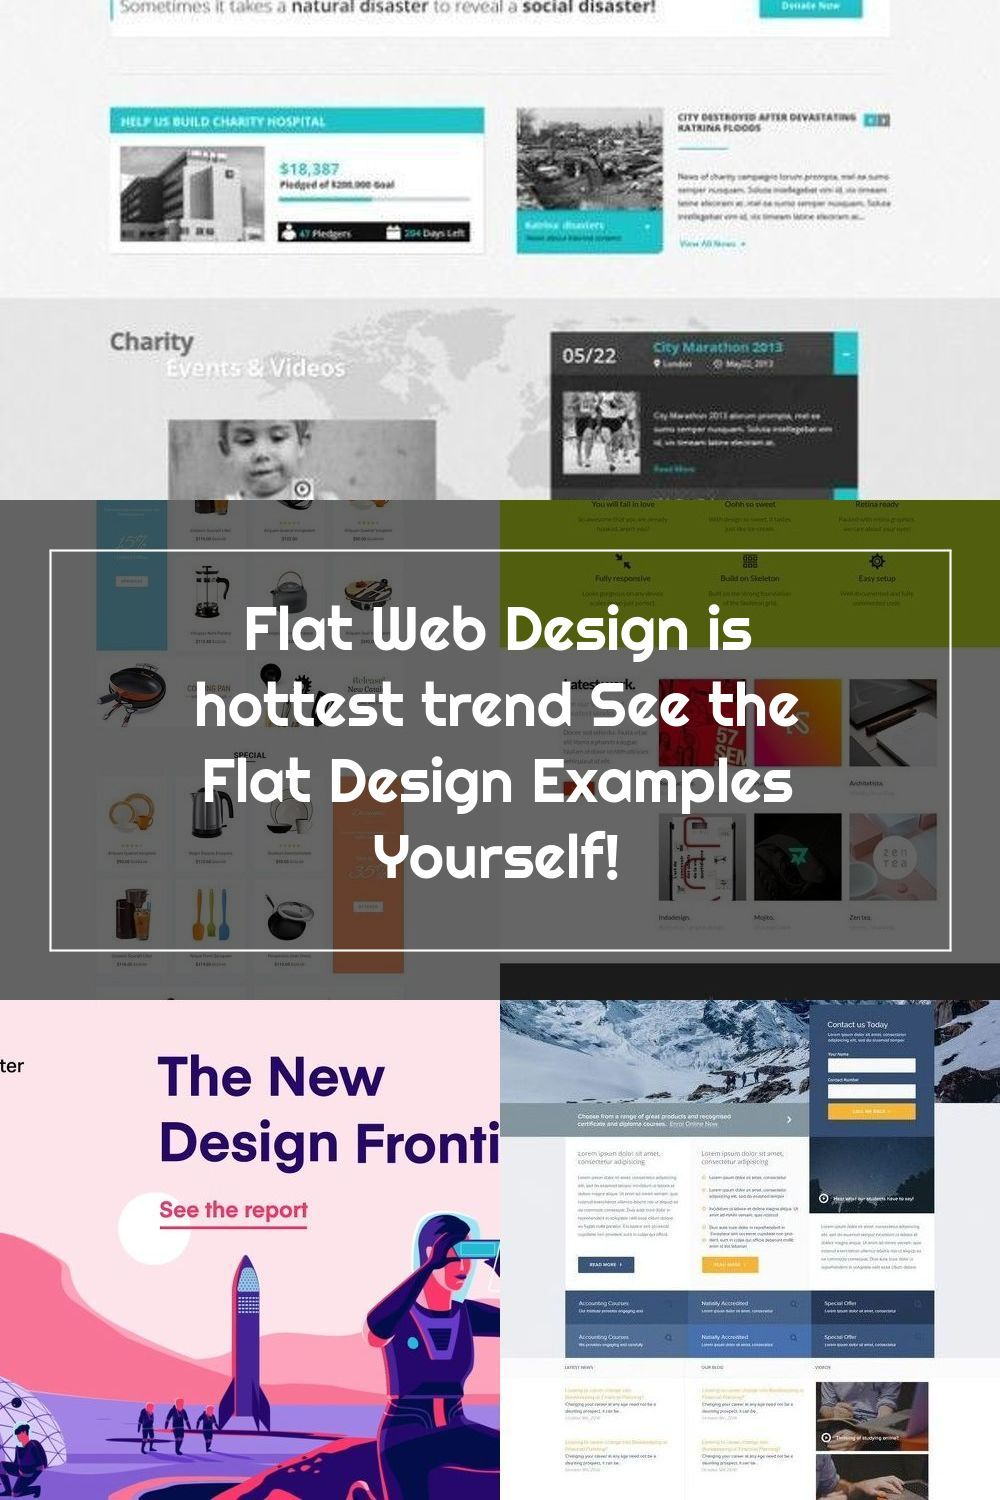 Flat Web Design Is Hottest Trend See The Flat Design Examples Yourself Isharearena Creative Hub In 2020 Web Design Flat Web Design Flat Web